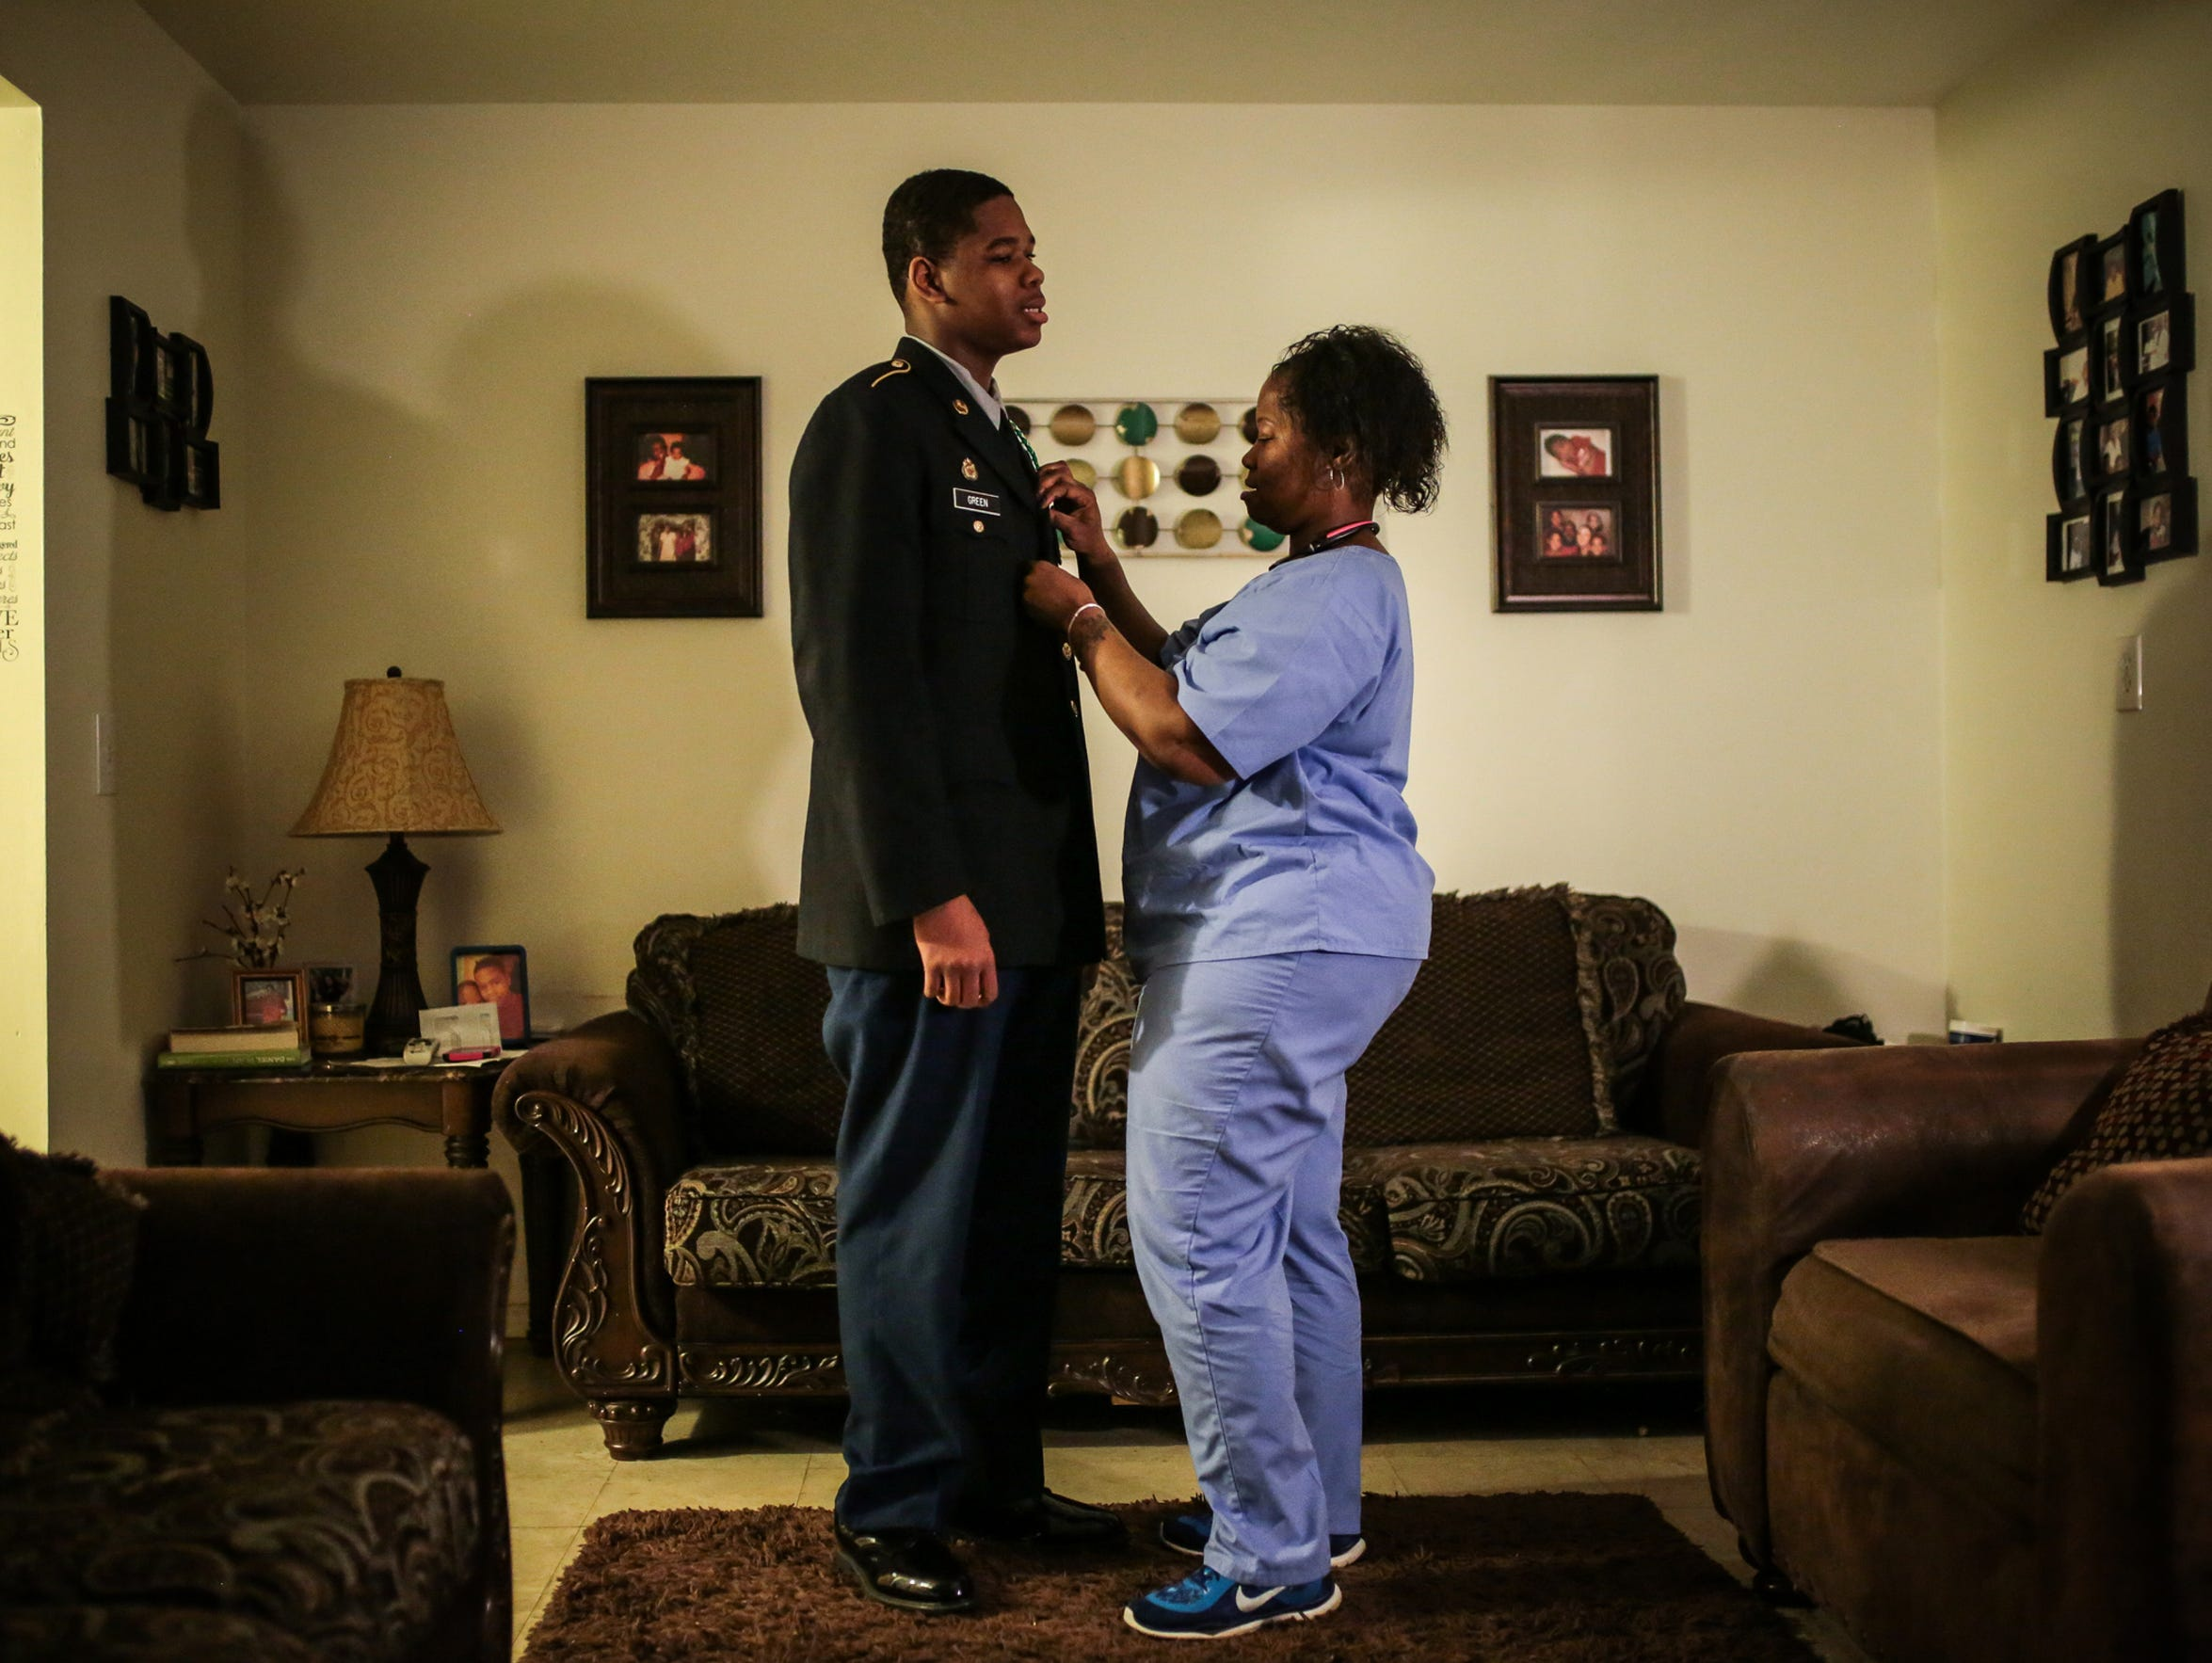 Quelyn Calhoun, 34, of Detroit, fixes the JROTC uniform